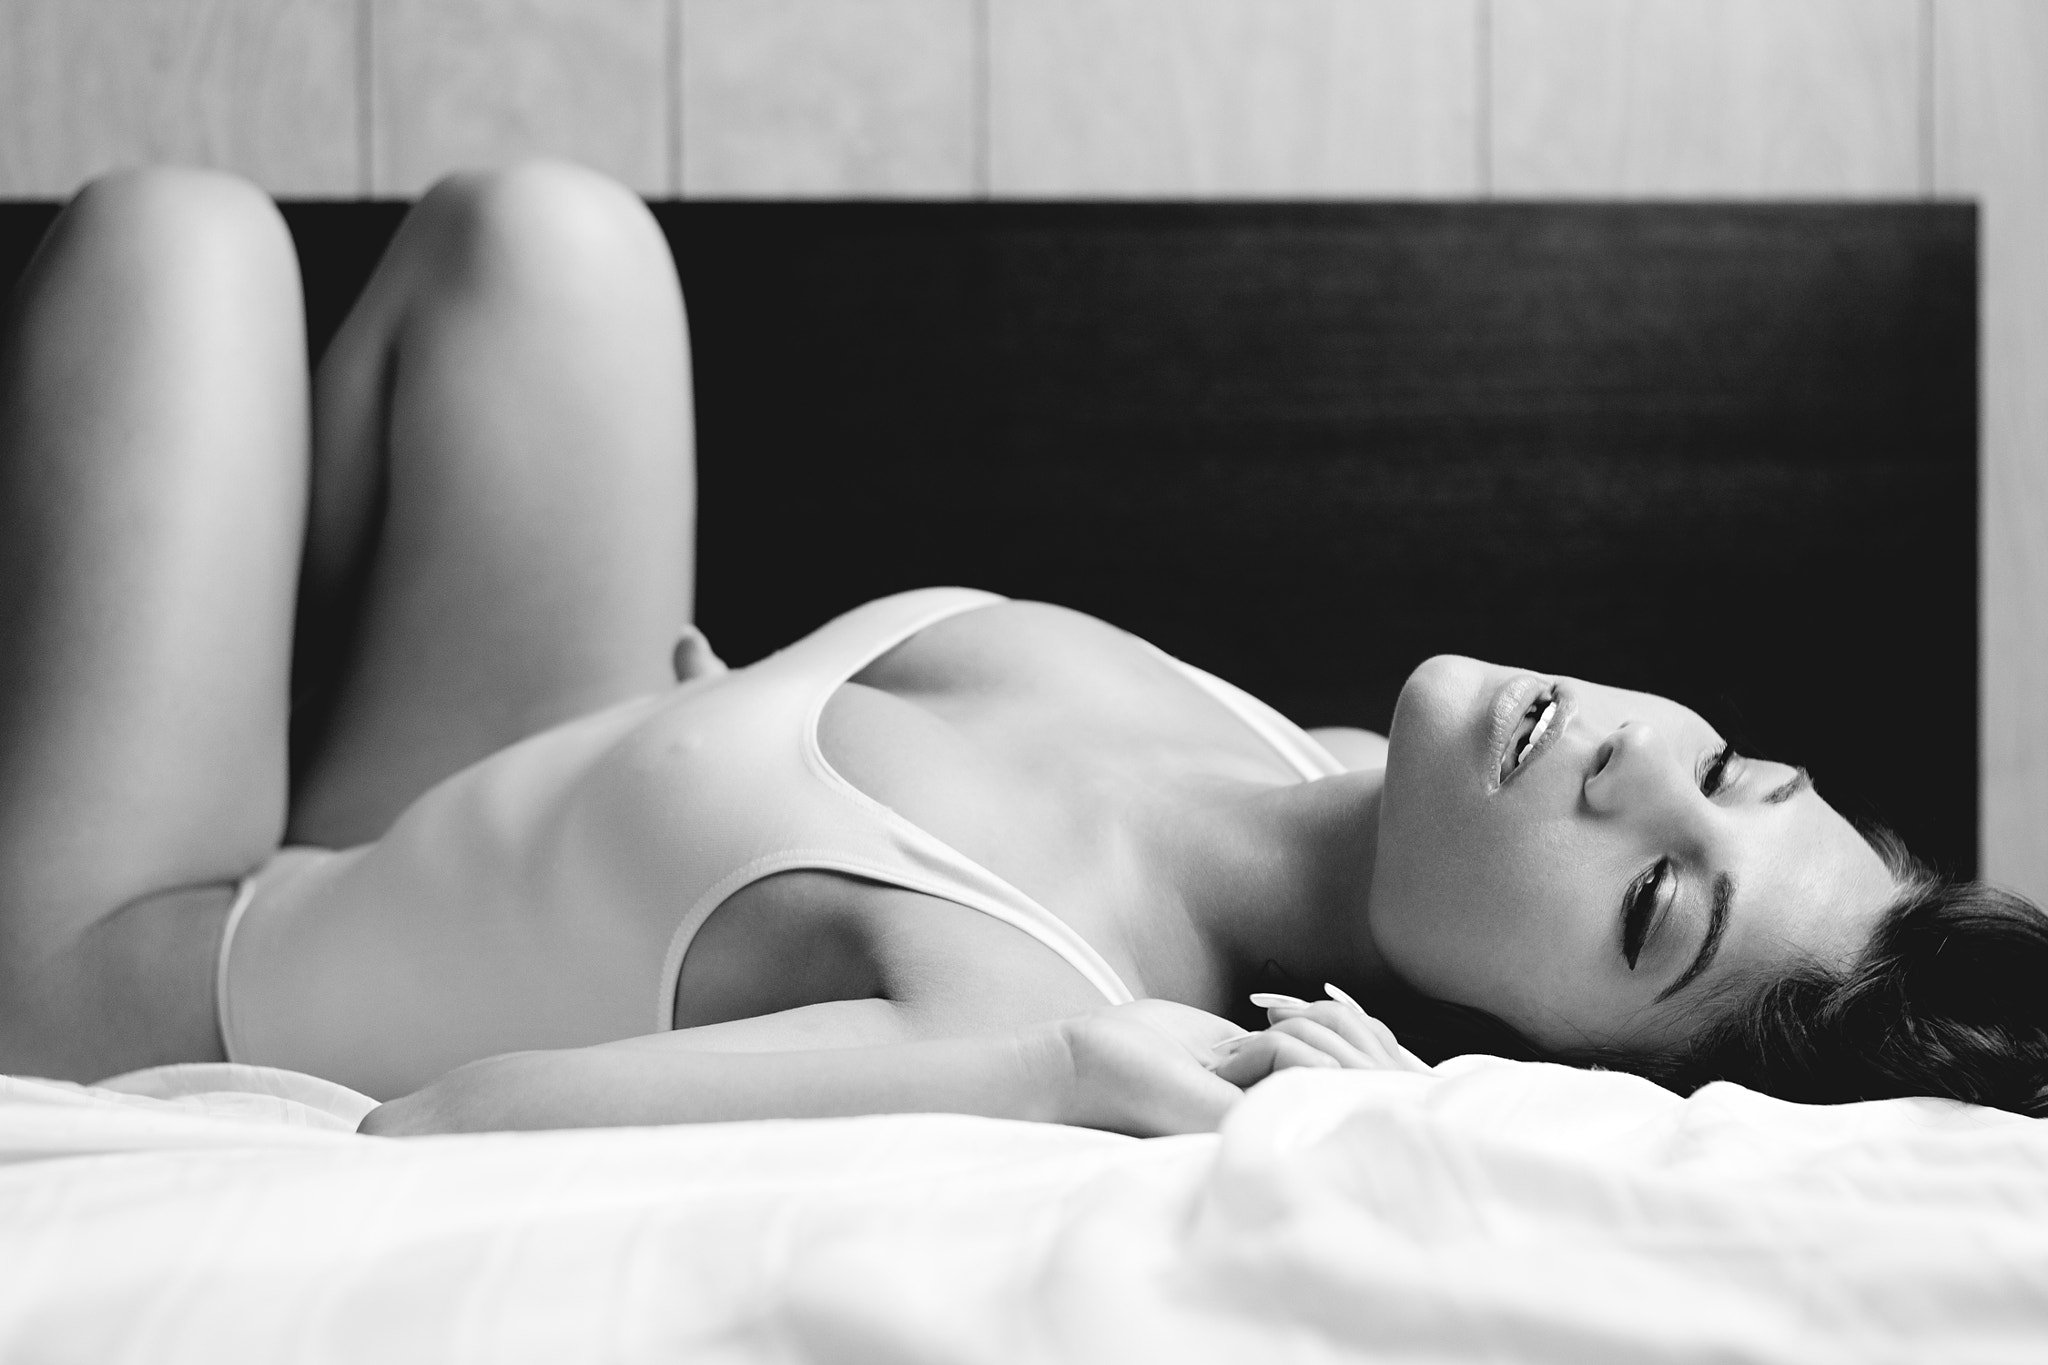 Photograph Samantha by Kevin Michael on 500px